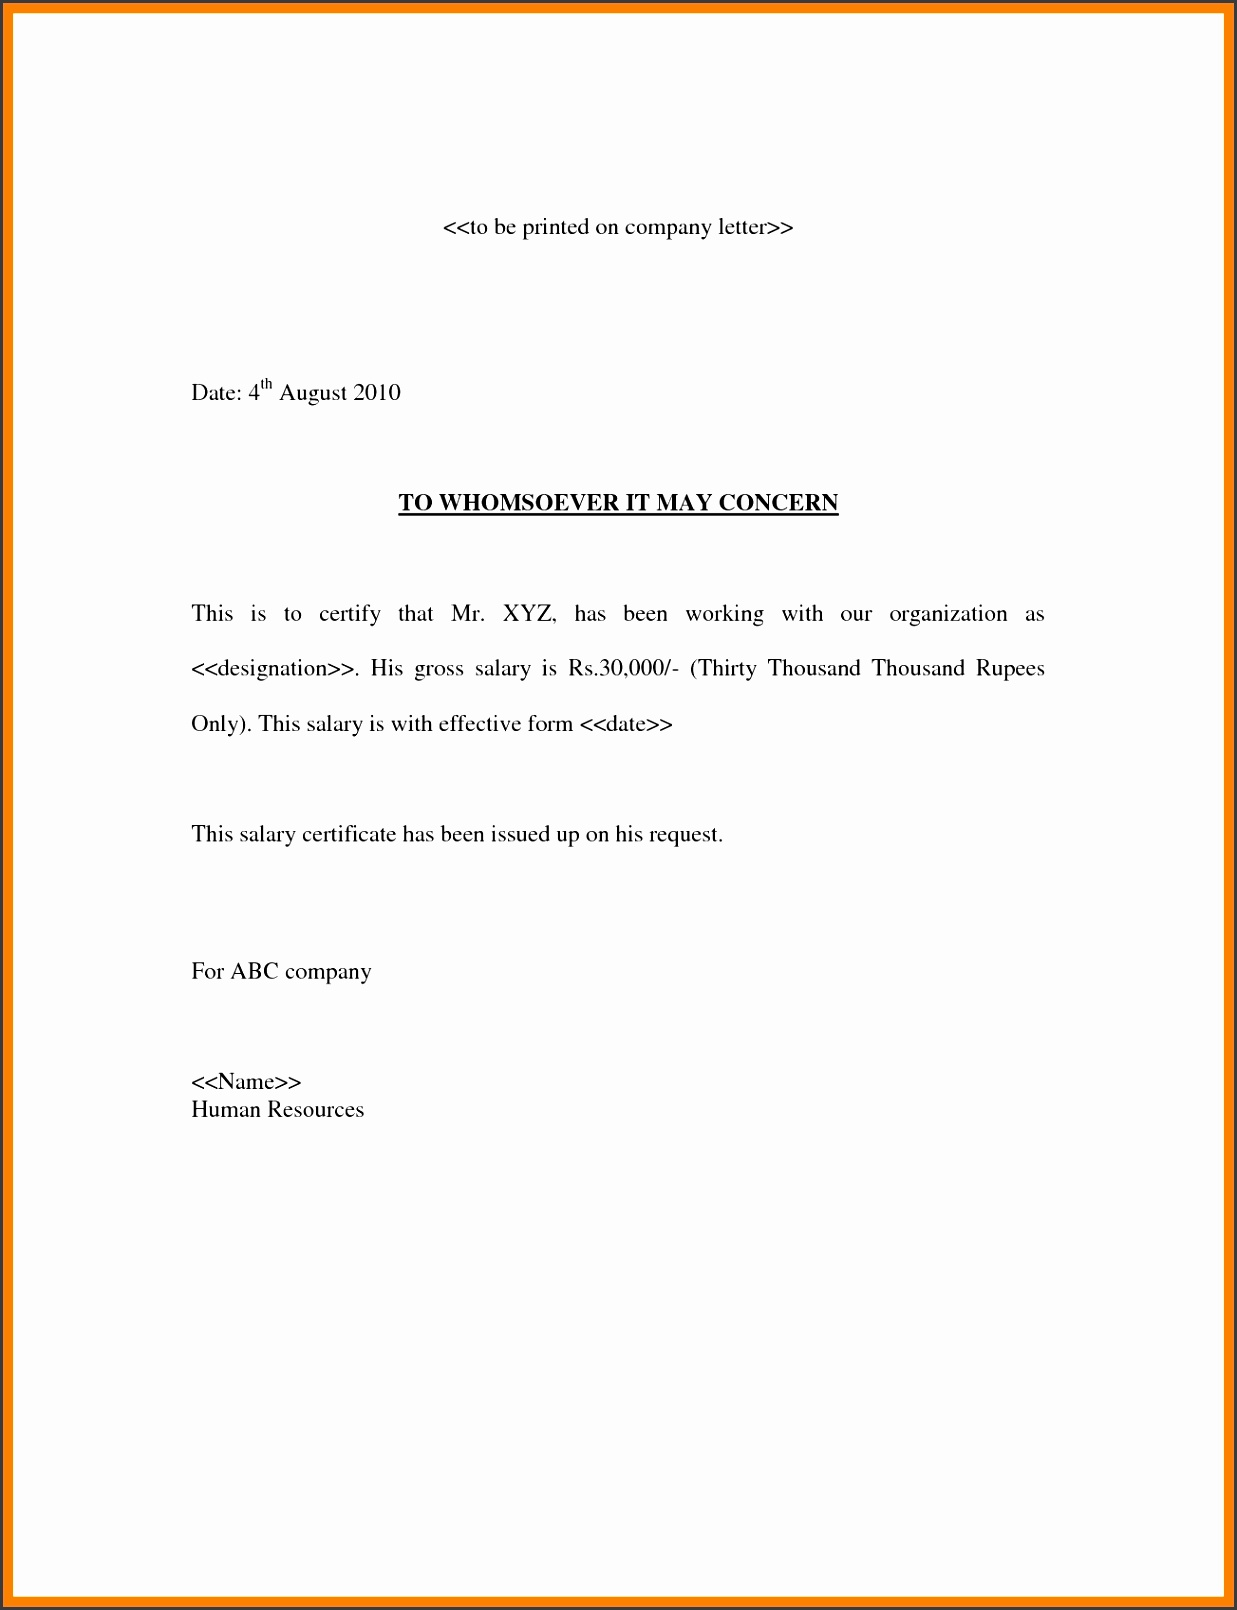 Confirmation Salary Letterlary Confirmation Letter Request Certificate Template Employee Salary Certification Letter Sample